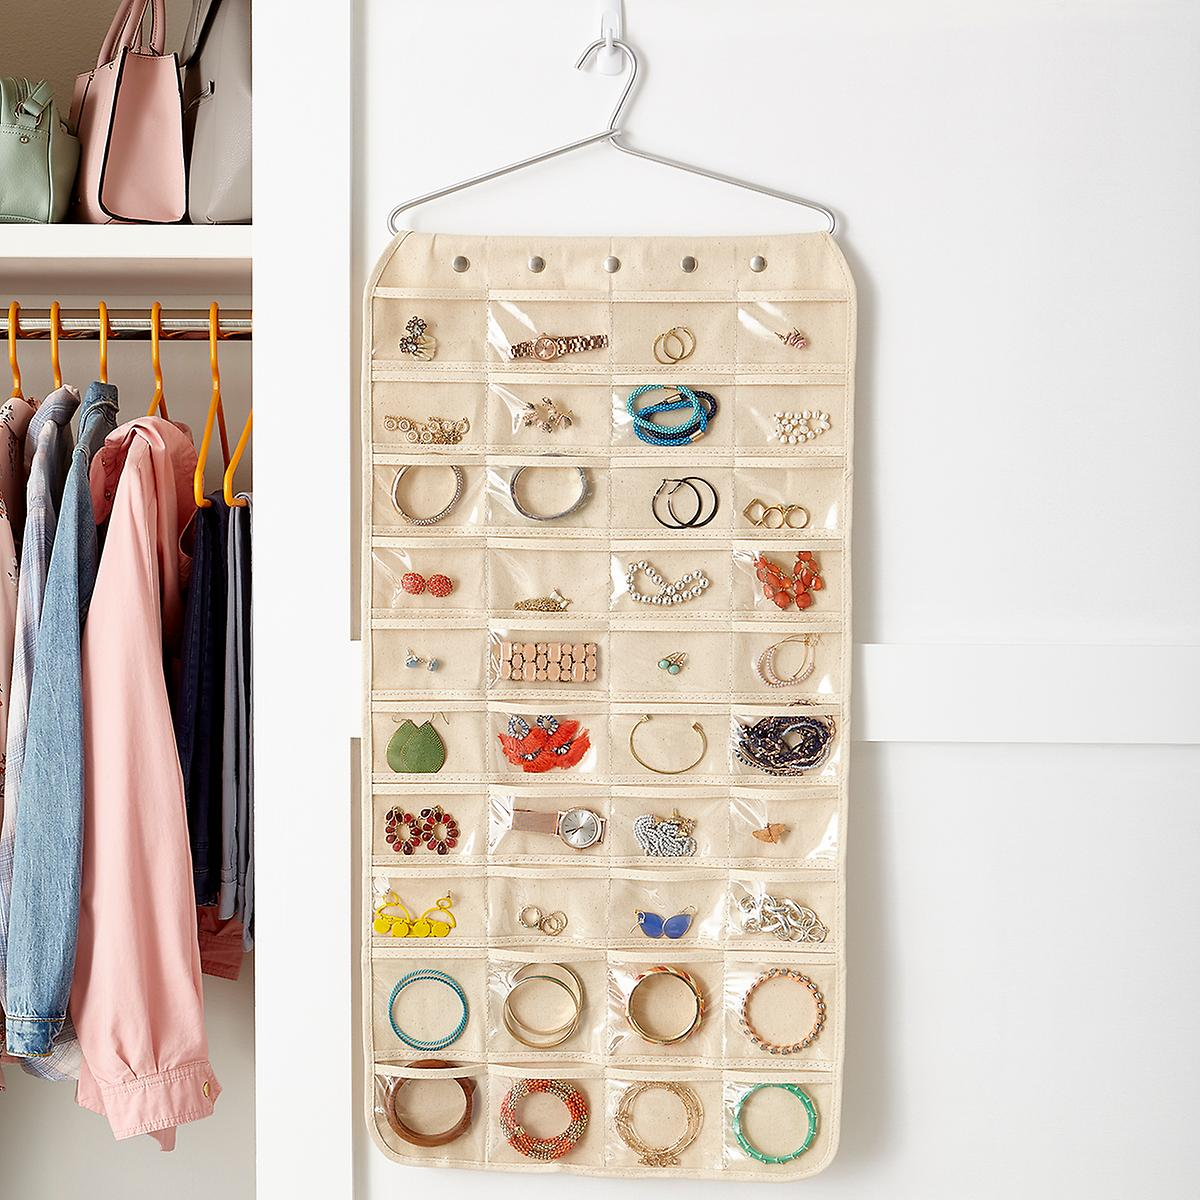 Greer Image Consulting - How to Organizer Your Jewelry - Hanging Jewelry Organizer